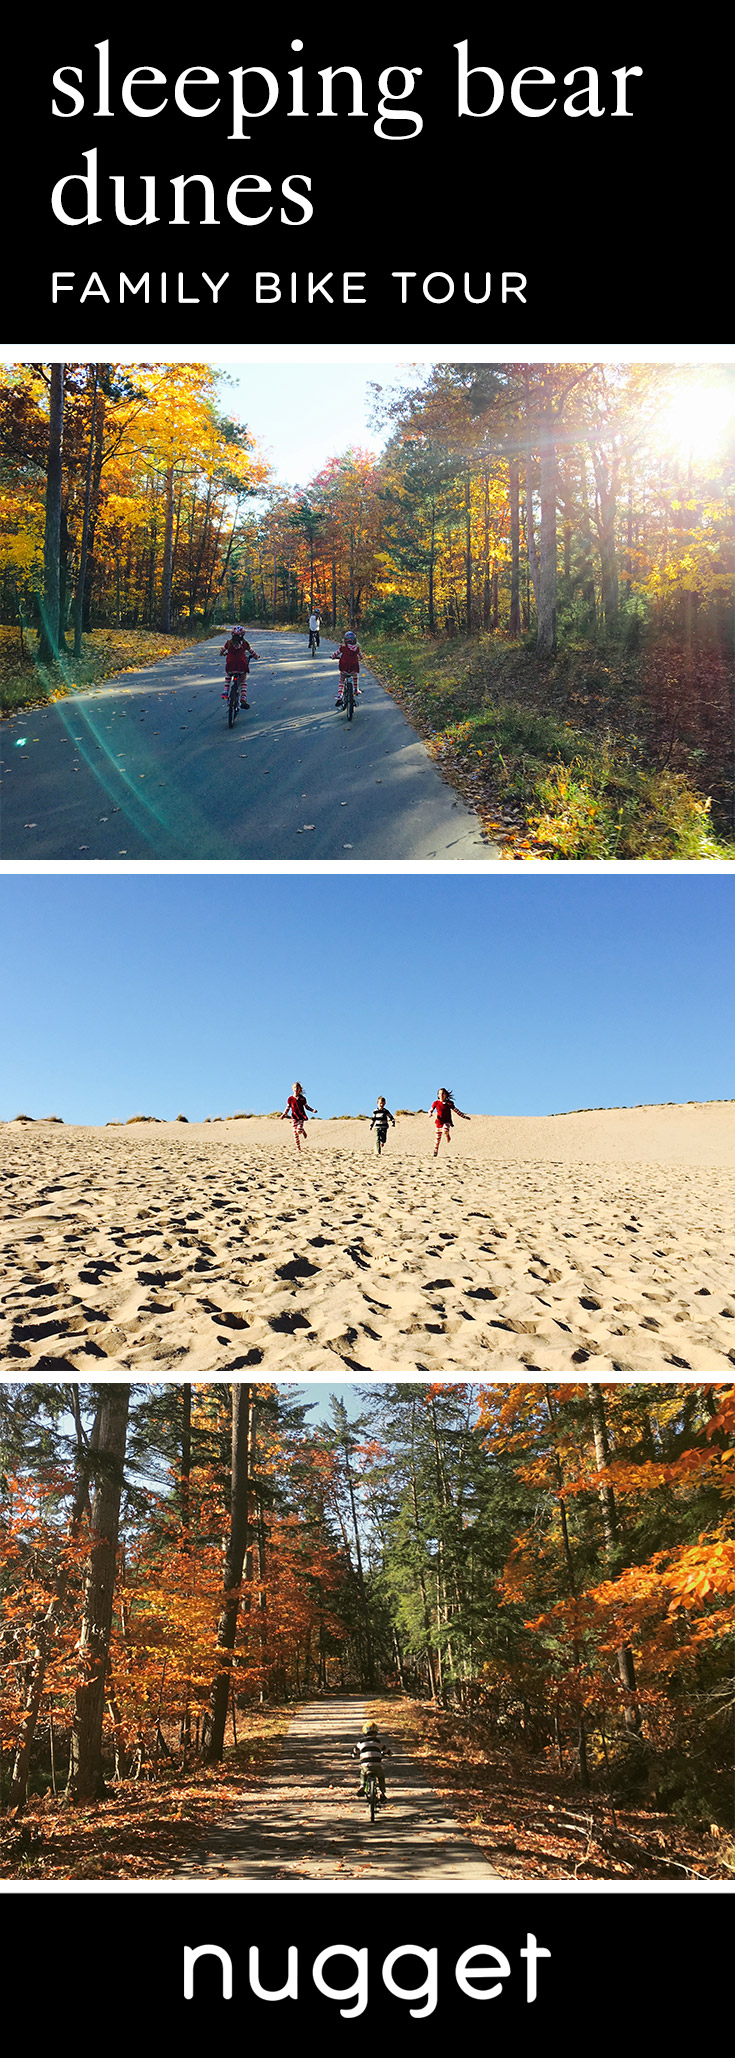 Bike Tour of Sleeping Bear Dunes